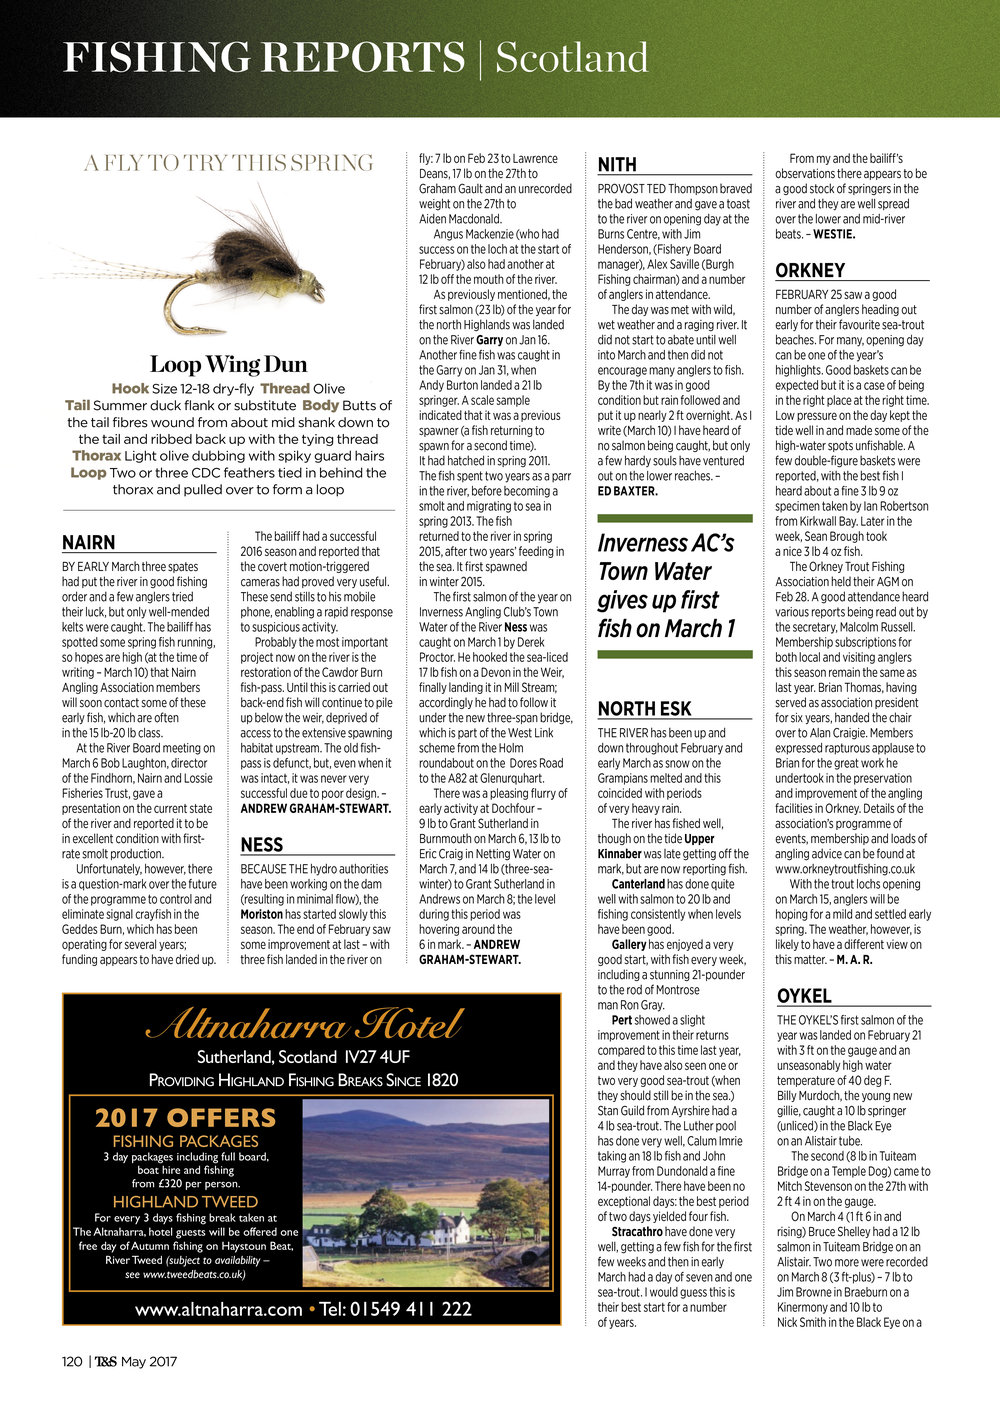 Fishing Reports May 2017 p120.jpg